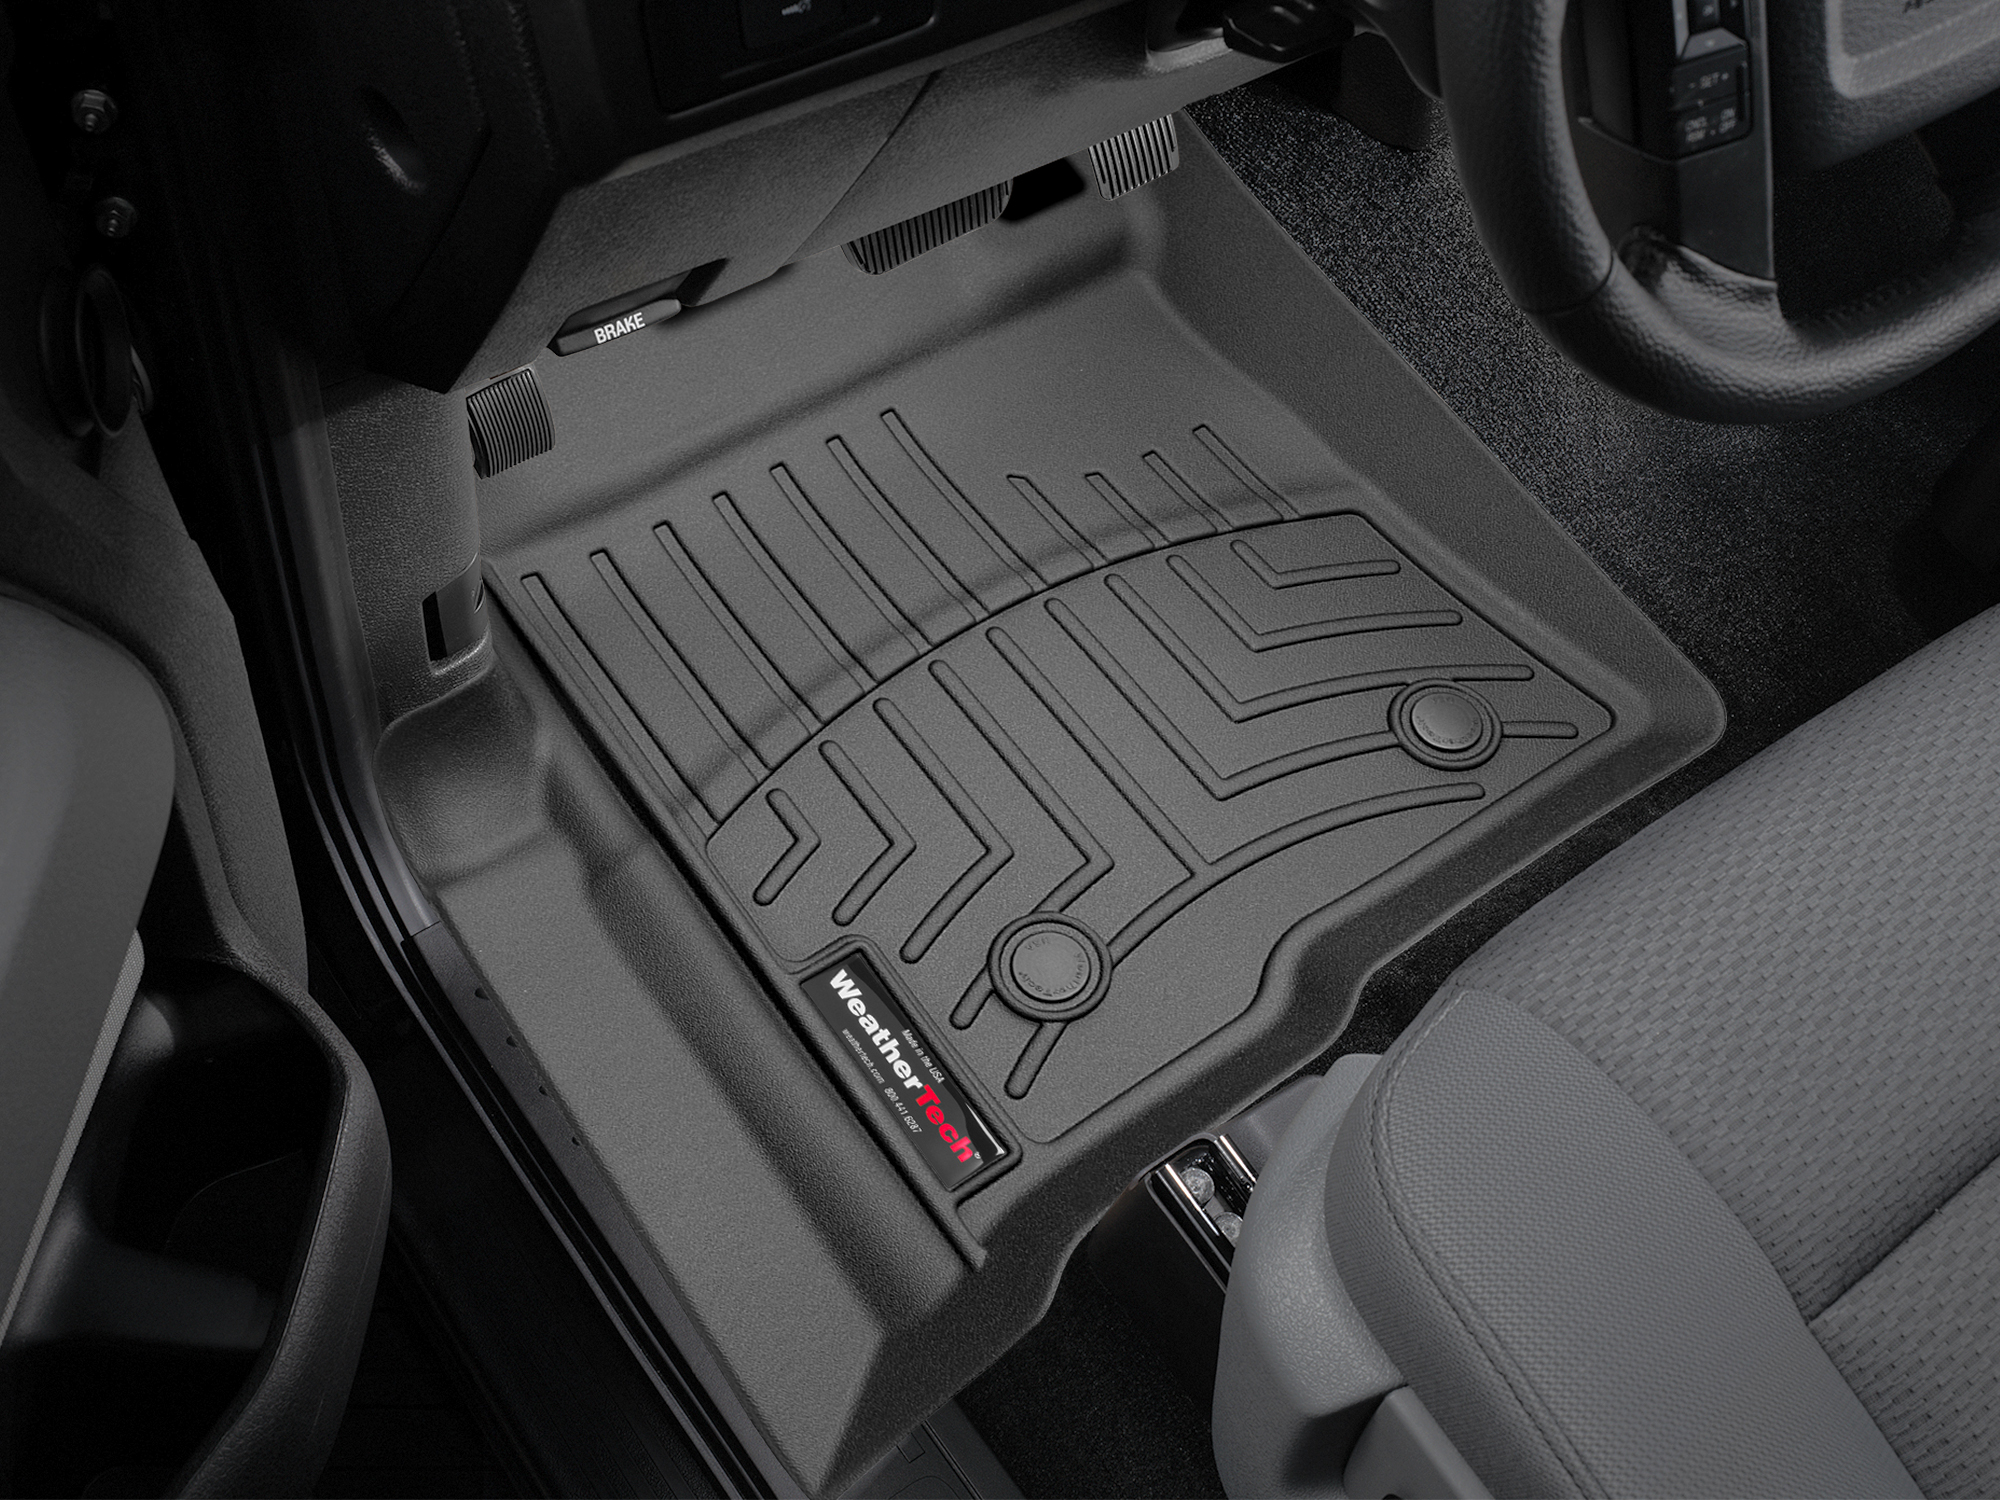 2016 Ford Focus | Floor Mats - Laser measured floor mats for a perfect fit  | WeatherTech